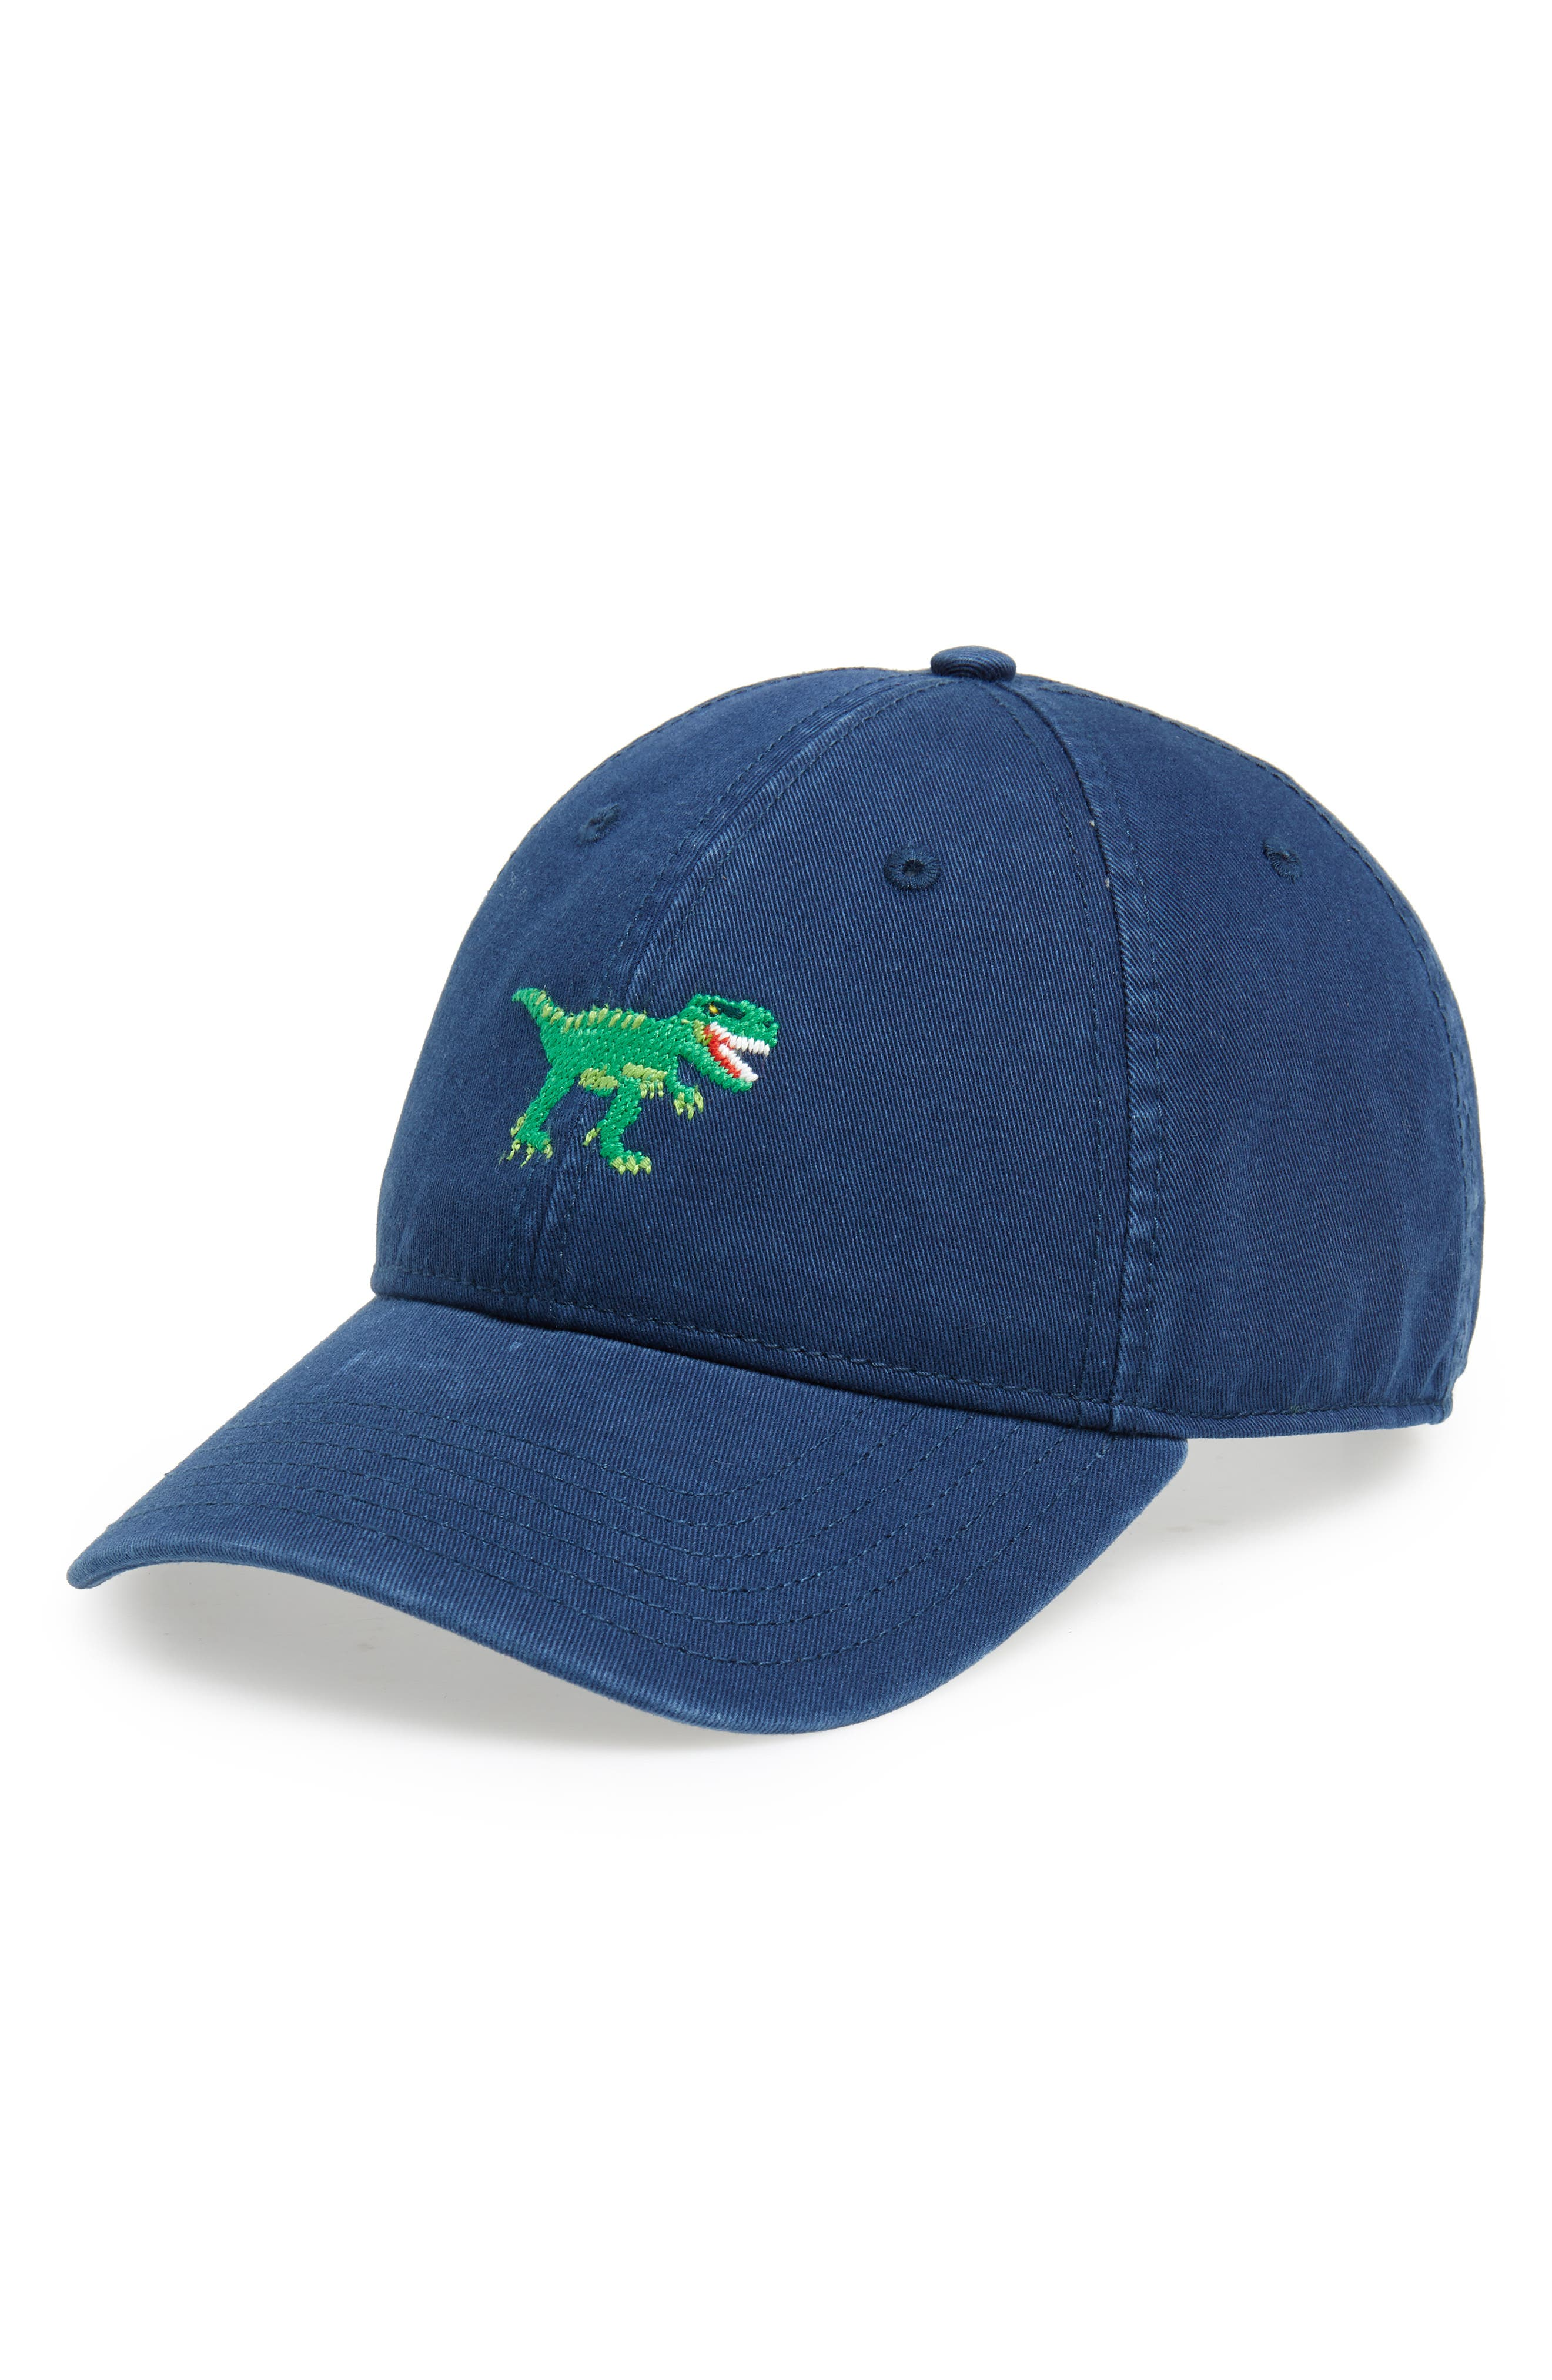 T-Rex Baseball Cap,                             Main thumbnail 1, color,                             400